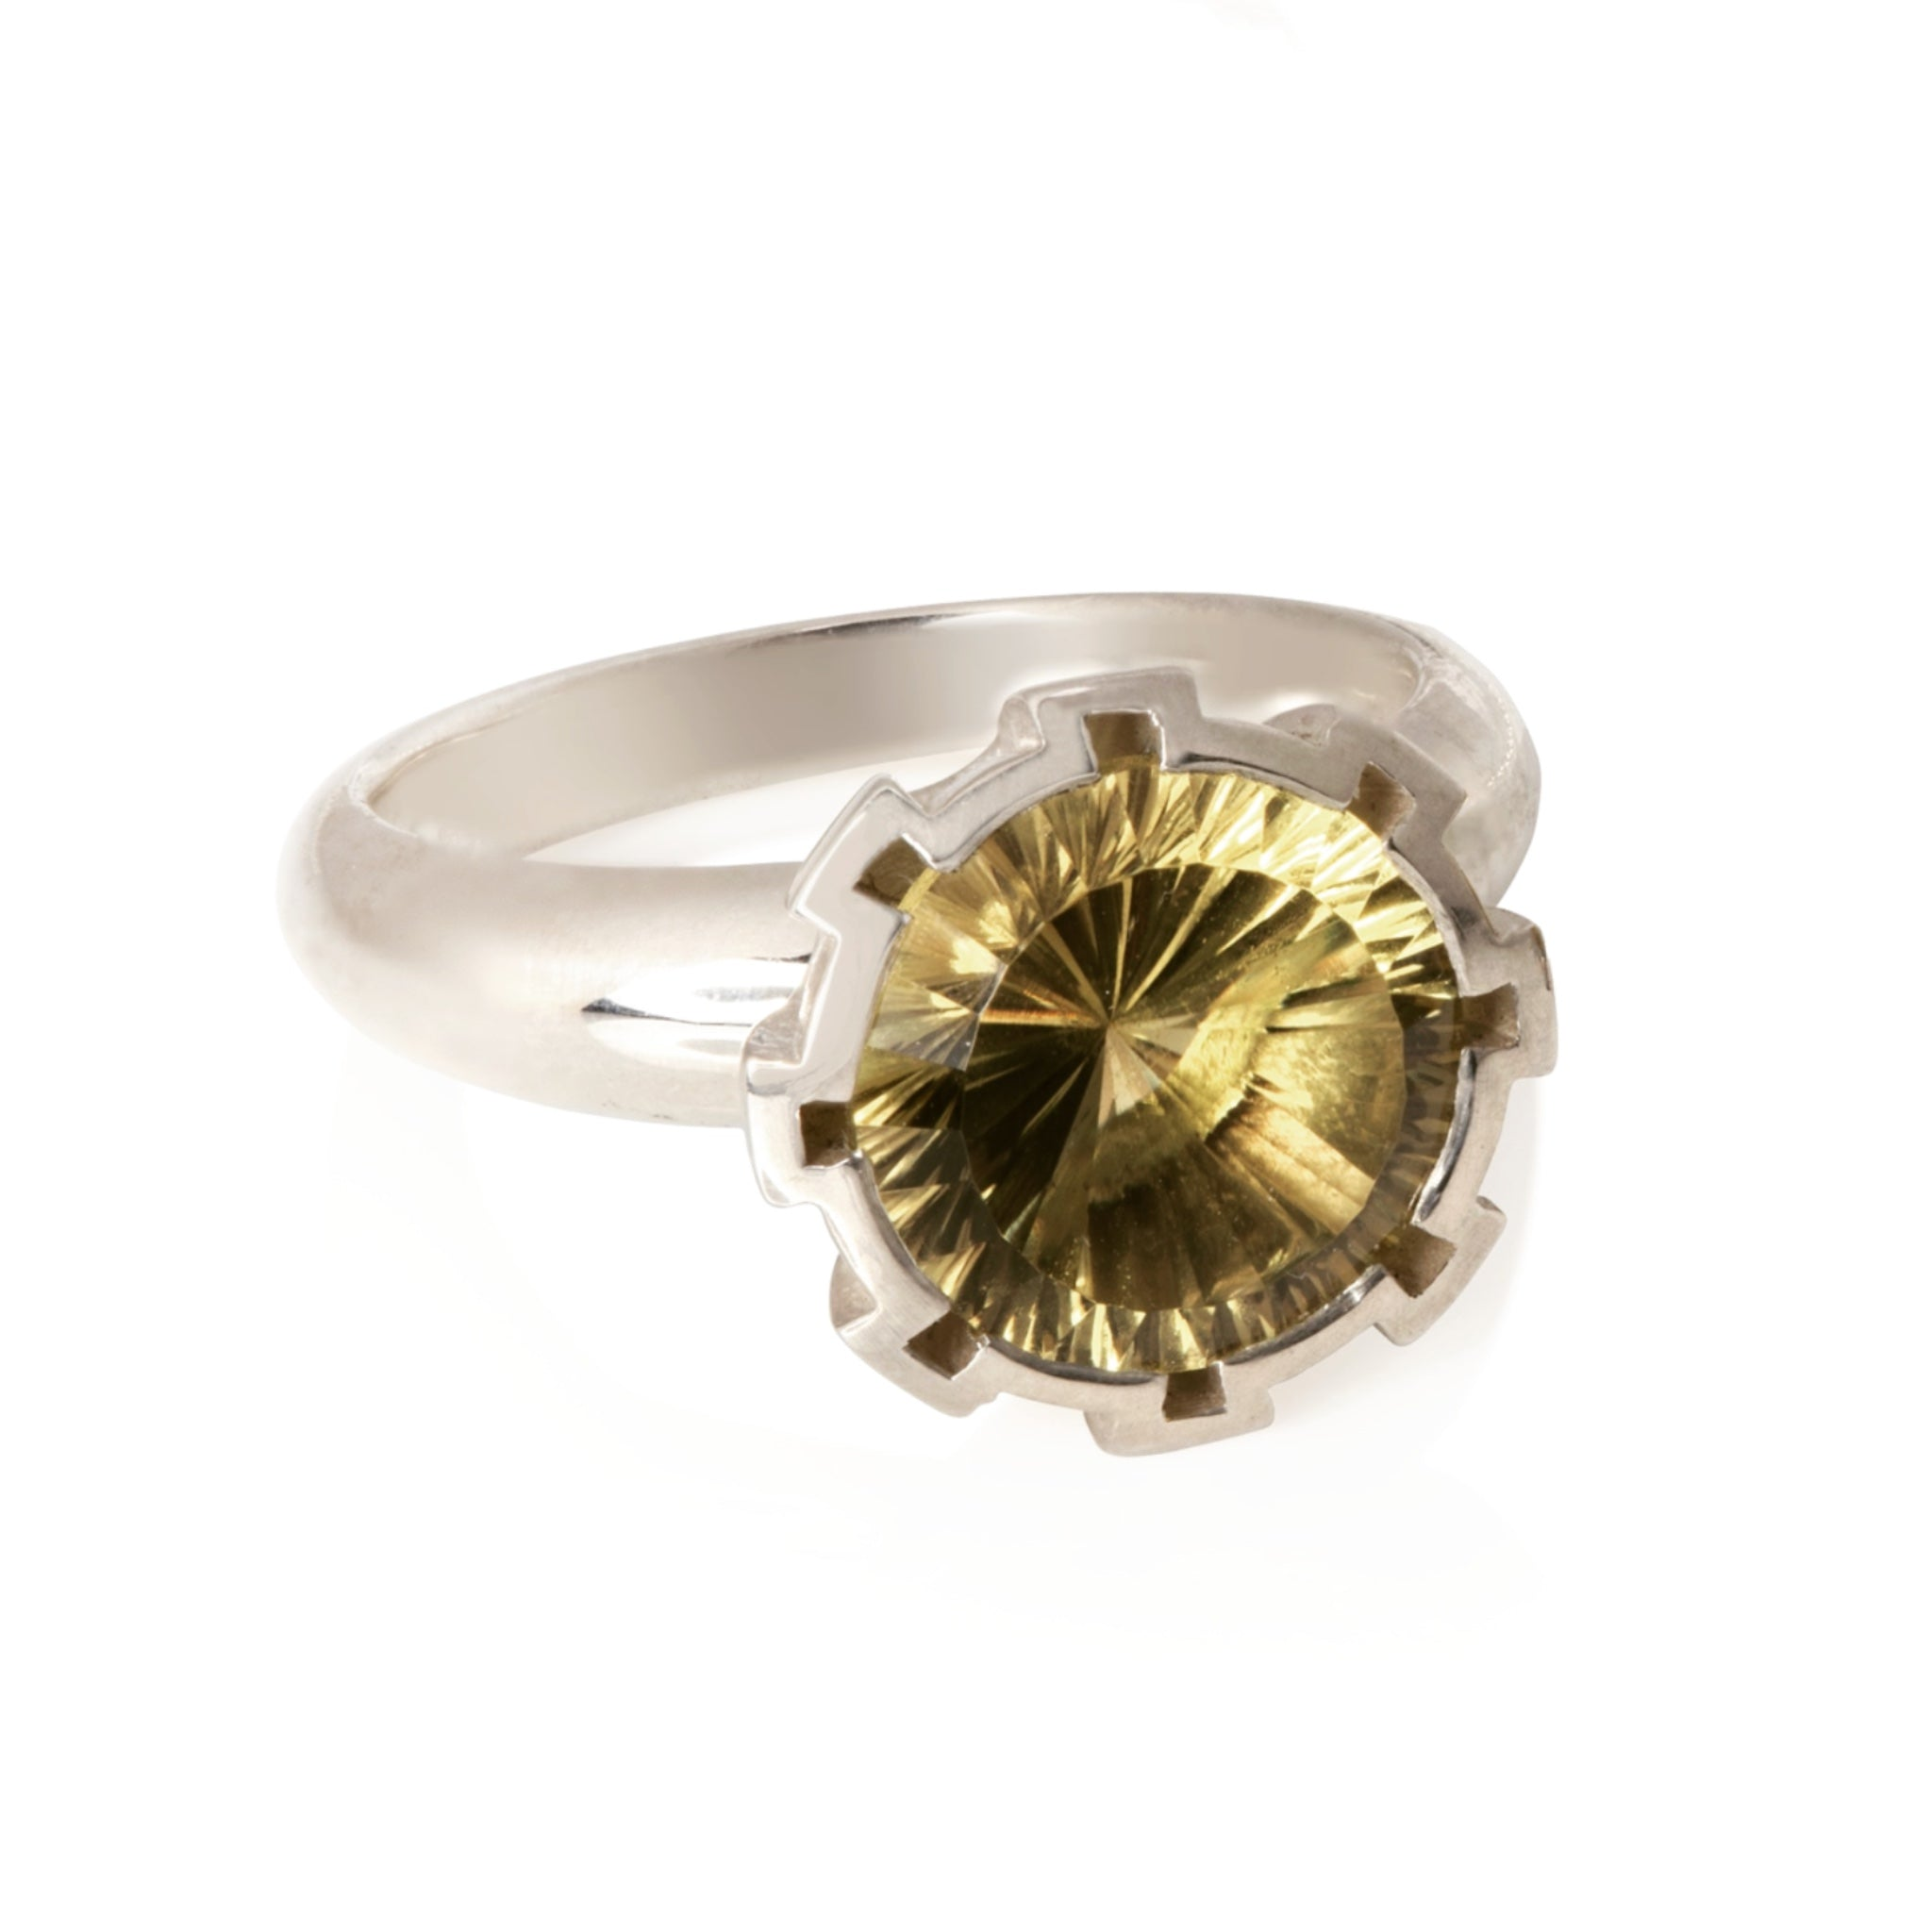 Concave Cut Citrine Ring in Silver